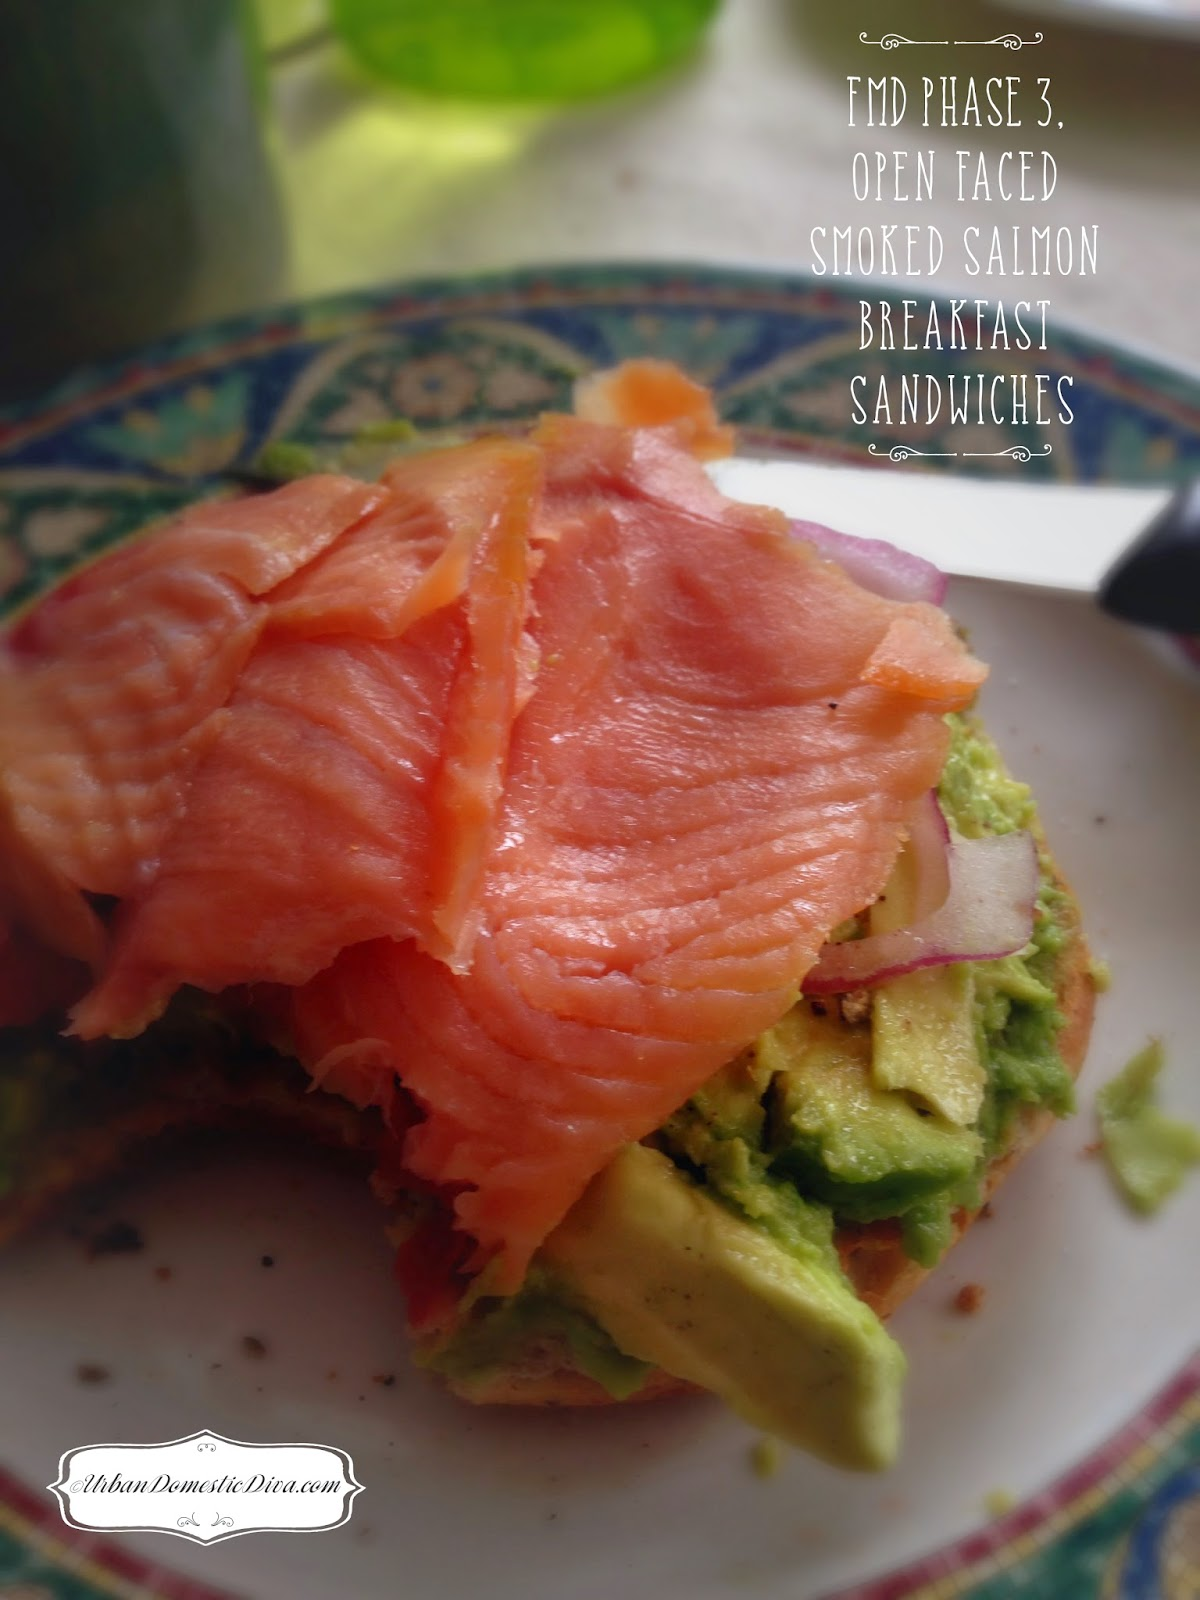 ... : RECIPE: FMD Phase 3, Open Faced Smoked Salmon Breakfast Sandwiches